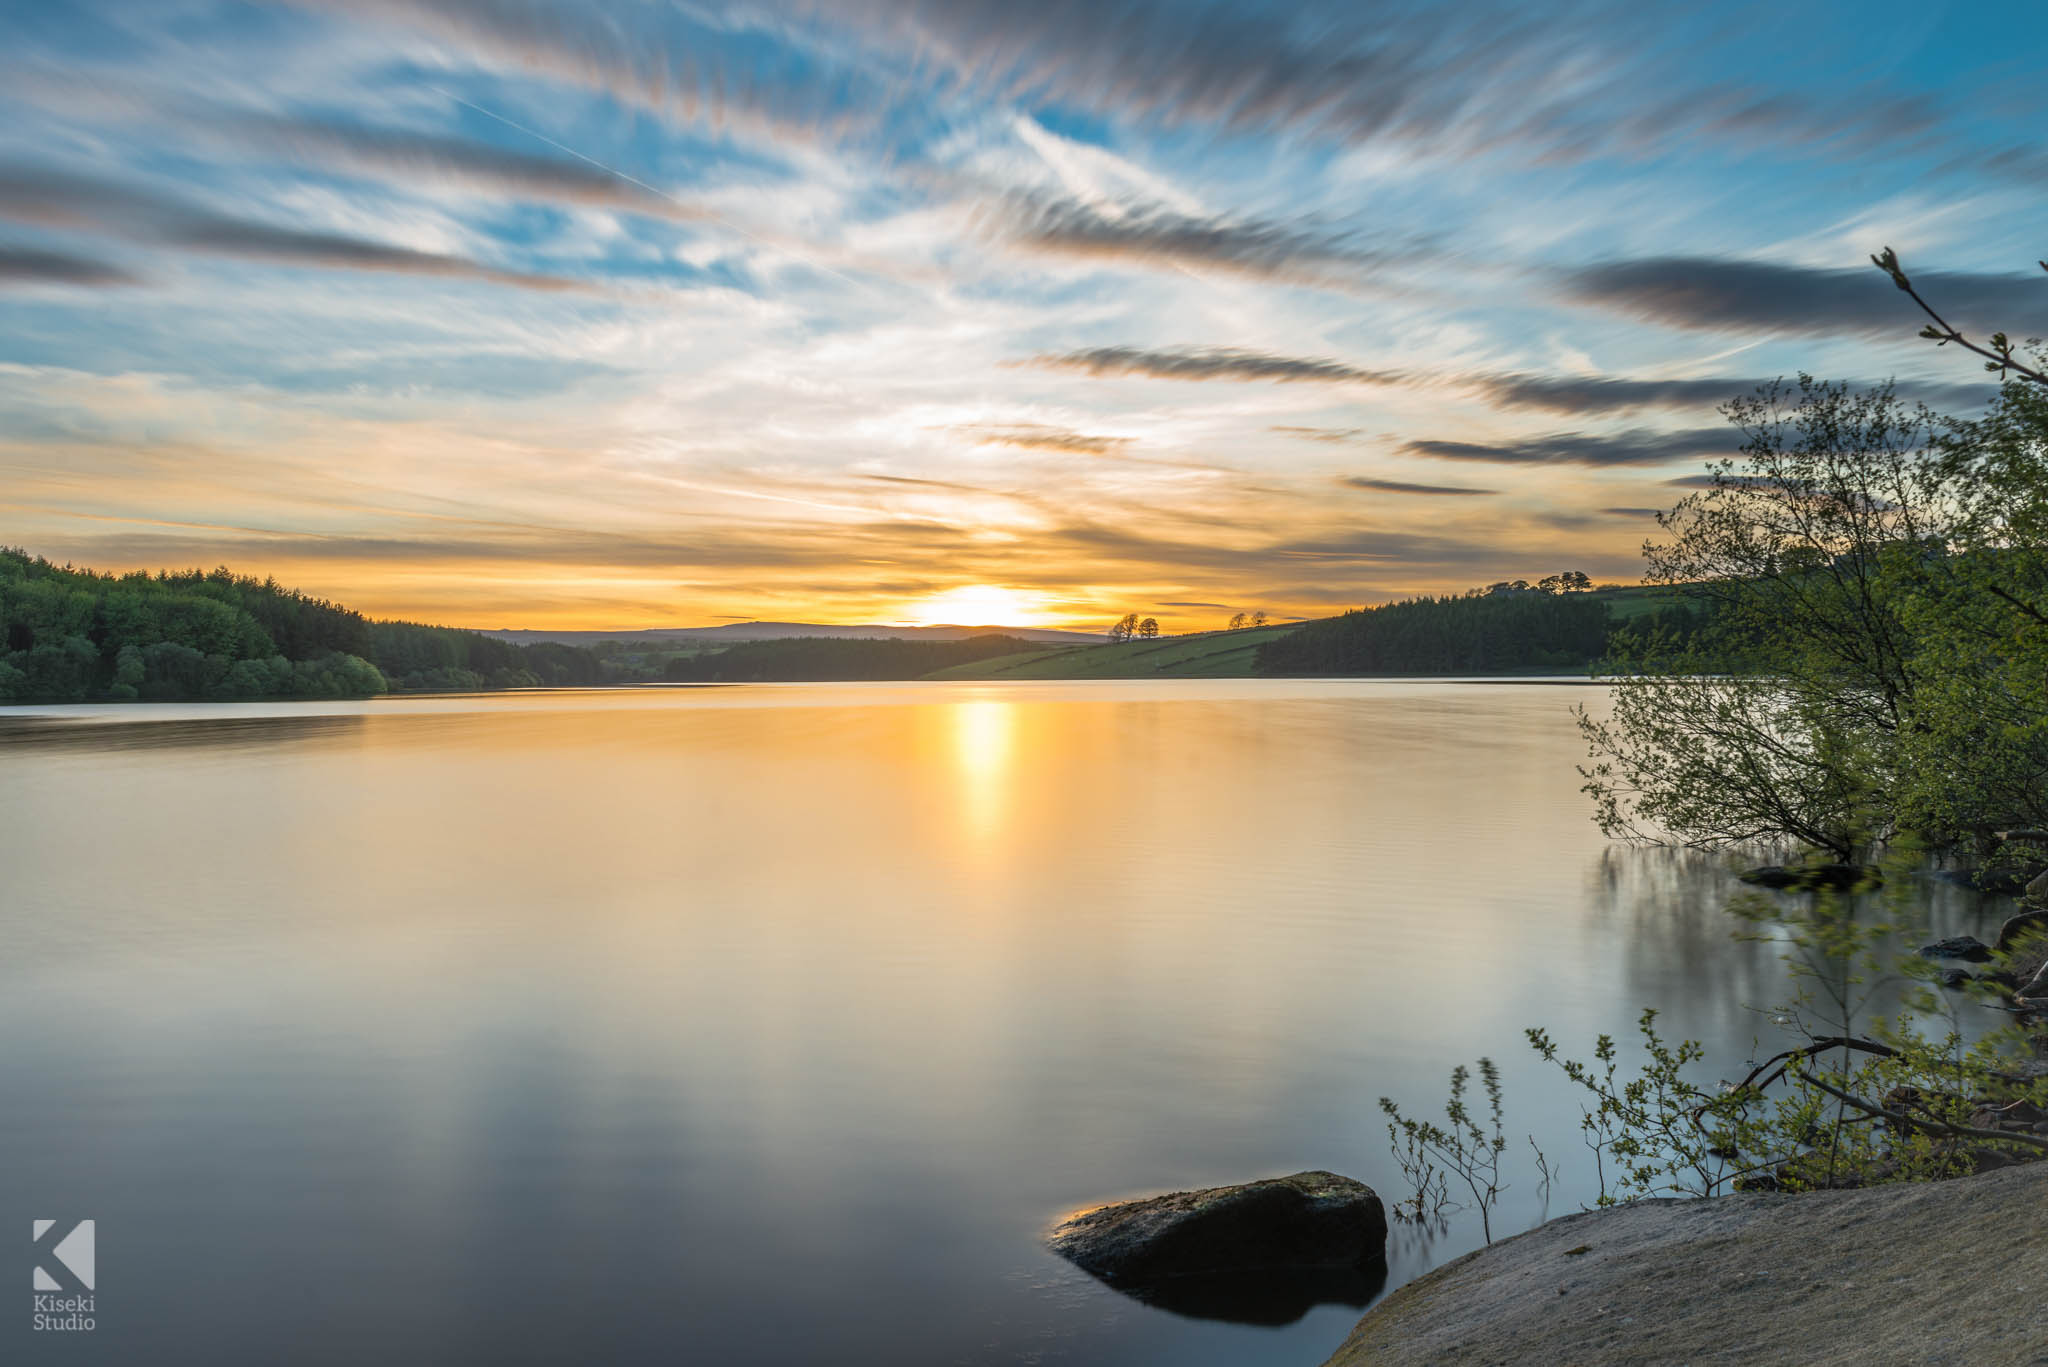 Thruscross Reservoir at Sunset near Harrogate